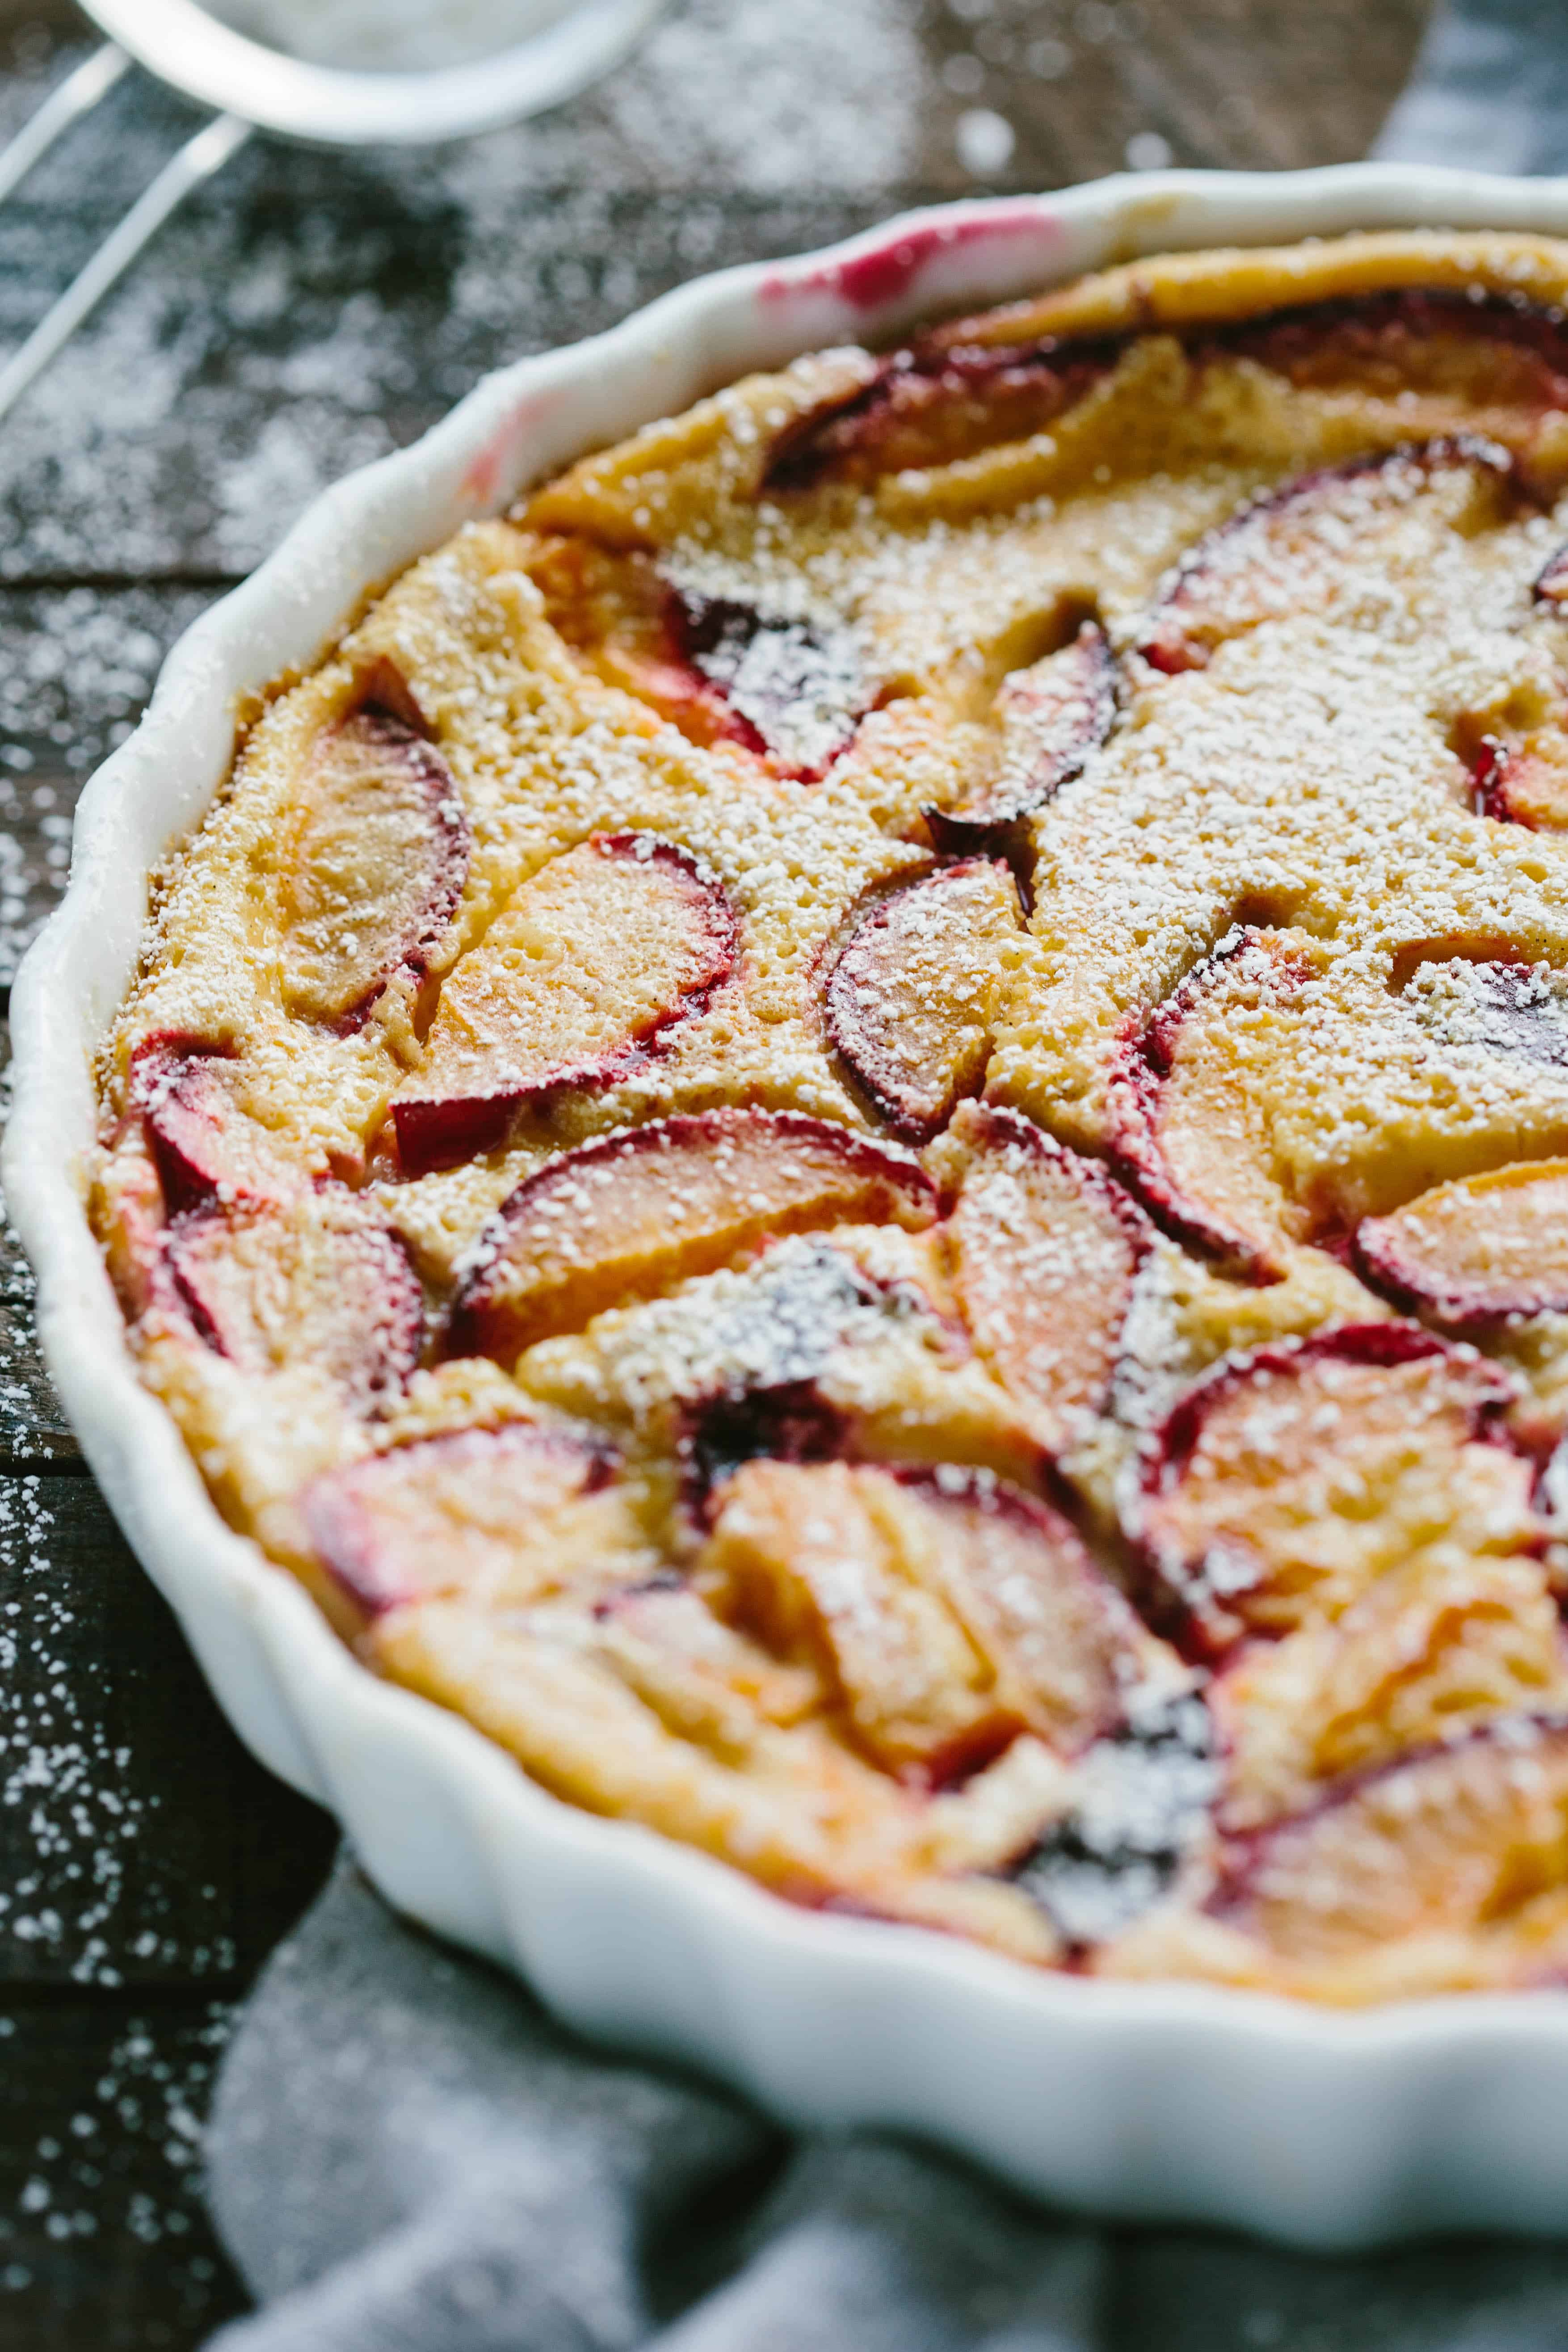 BROWN SUGAR PLUM CLAFOUTIS   This easy and elegant classic French dessert is silky, custardy, and full of juicy fresh plums. #french #dessert #easy #fruit #custard #elegant #egg #clafoutis #plums #recipe   ColeyCooks.com